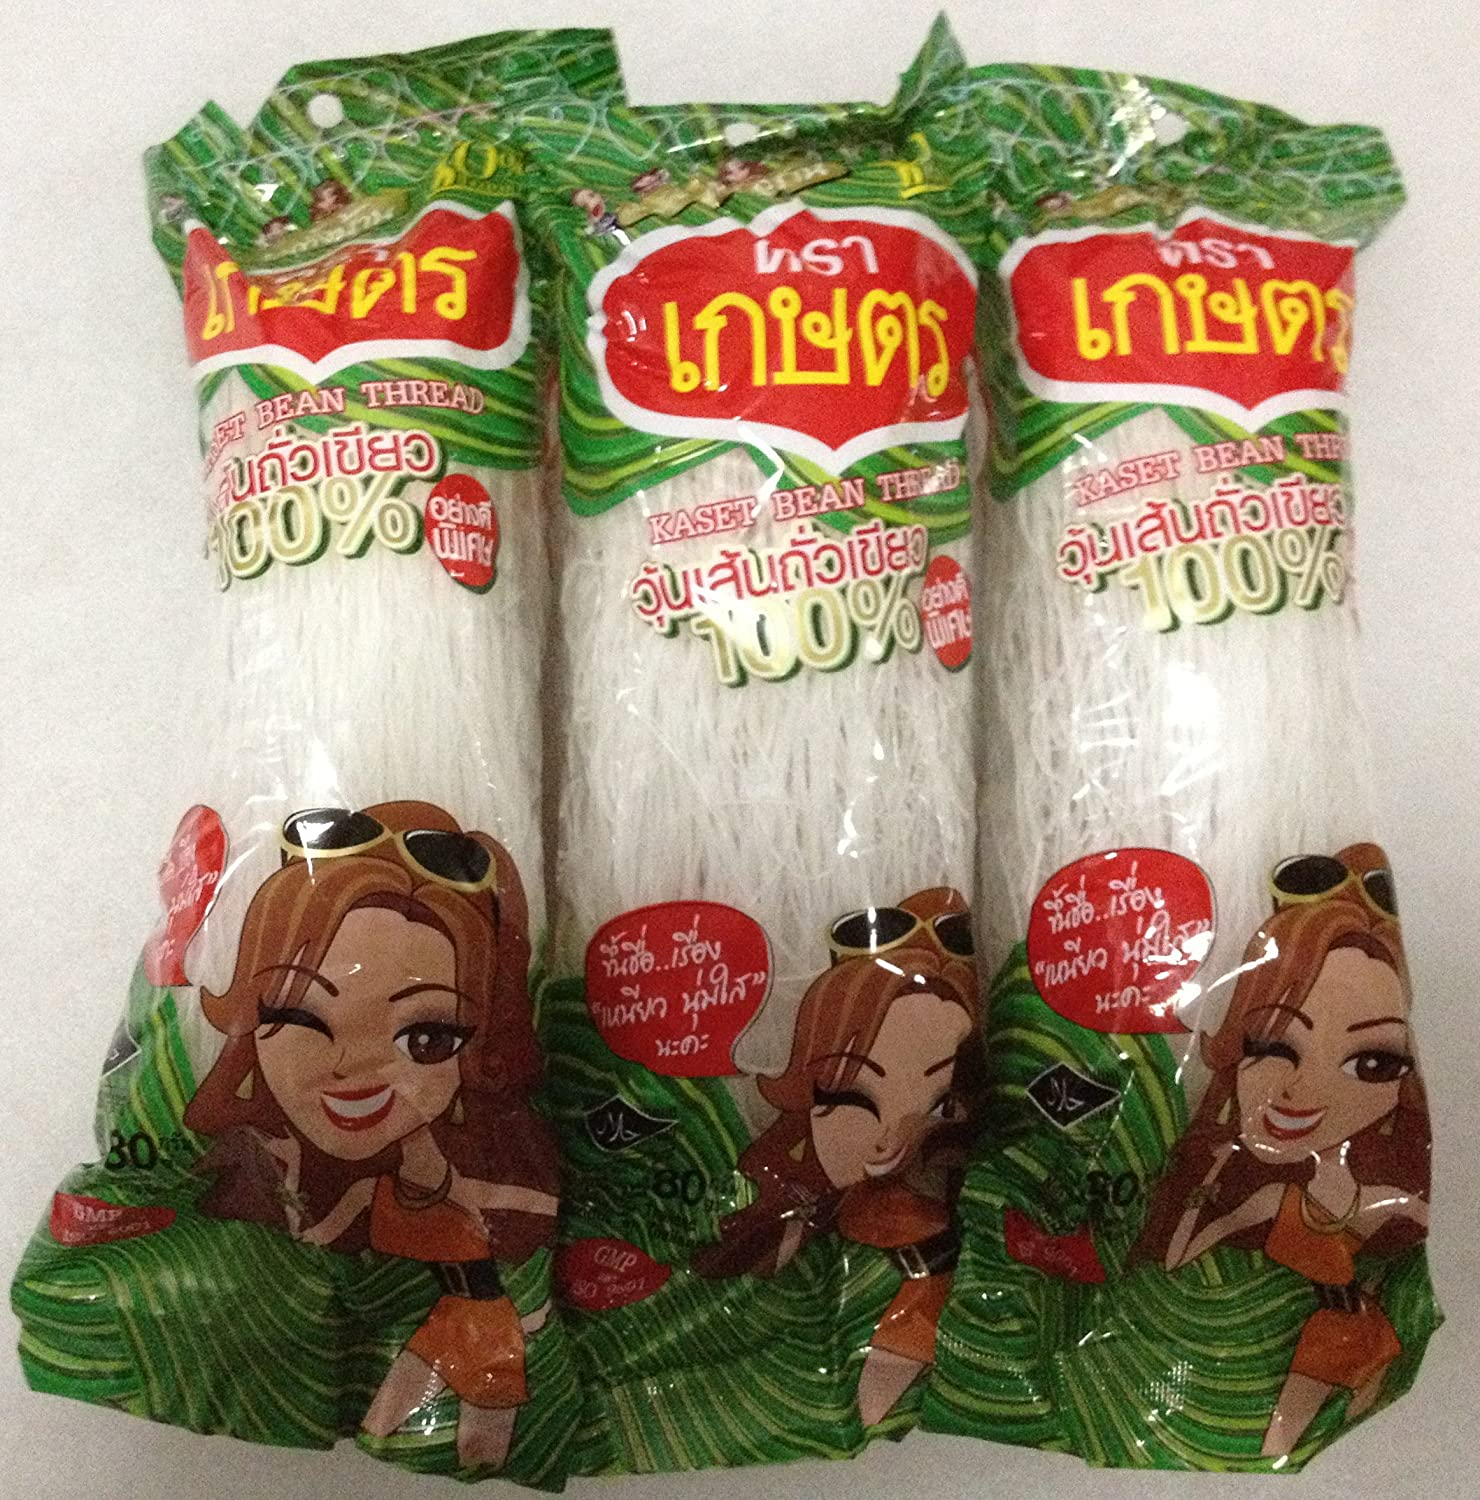 Kaset Brand Thai Bean Thread Glass Noodles - 8.46 oz (2.82 oz x 3 Sachets) From Thailand by Kaset